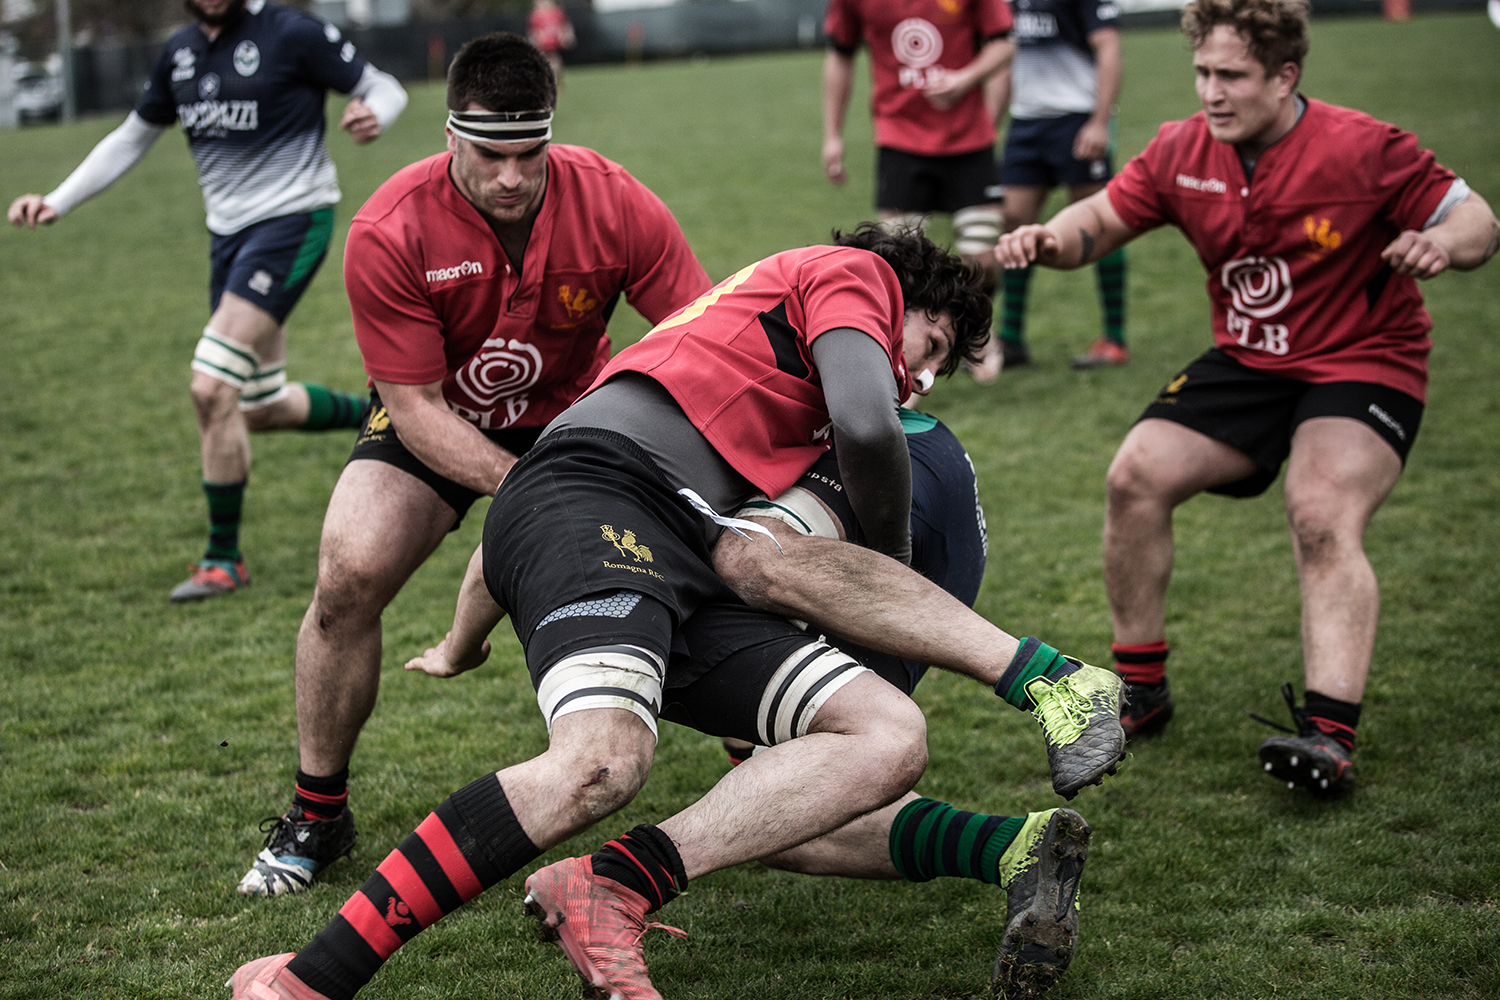 rugby_photograph_23.jpg